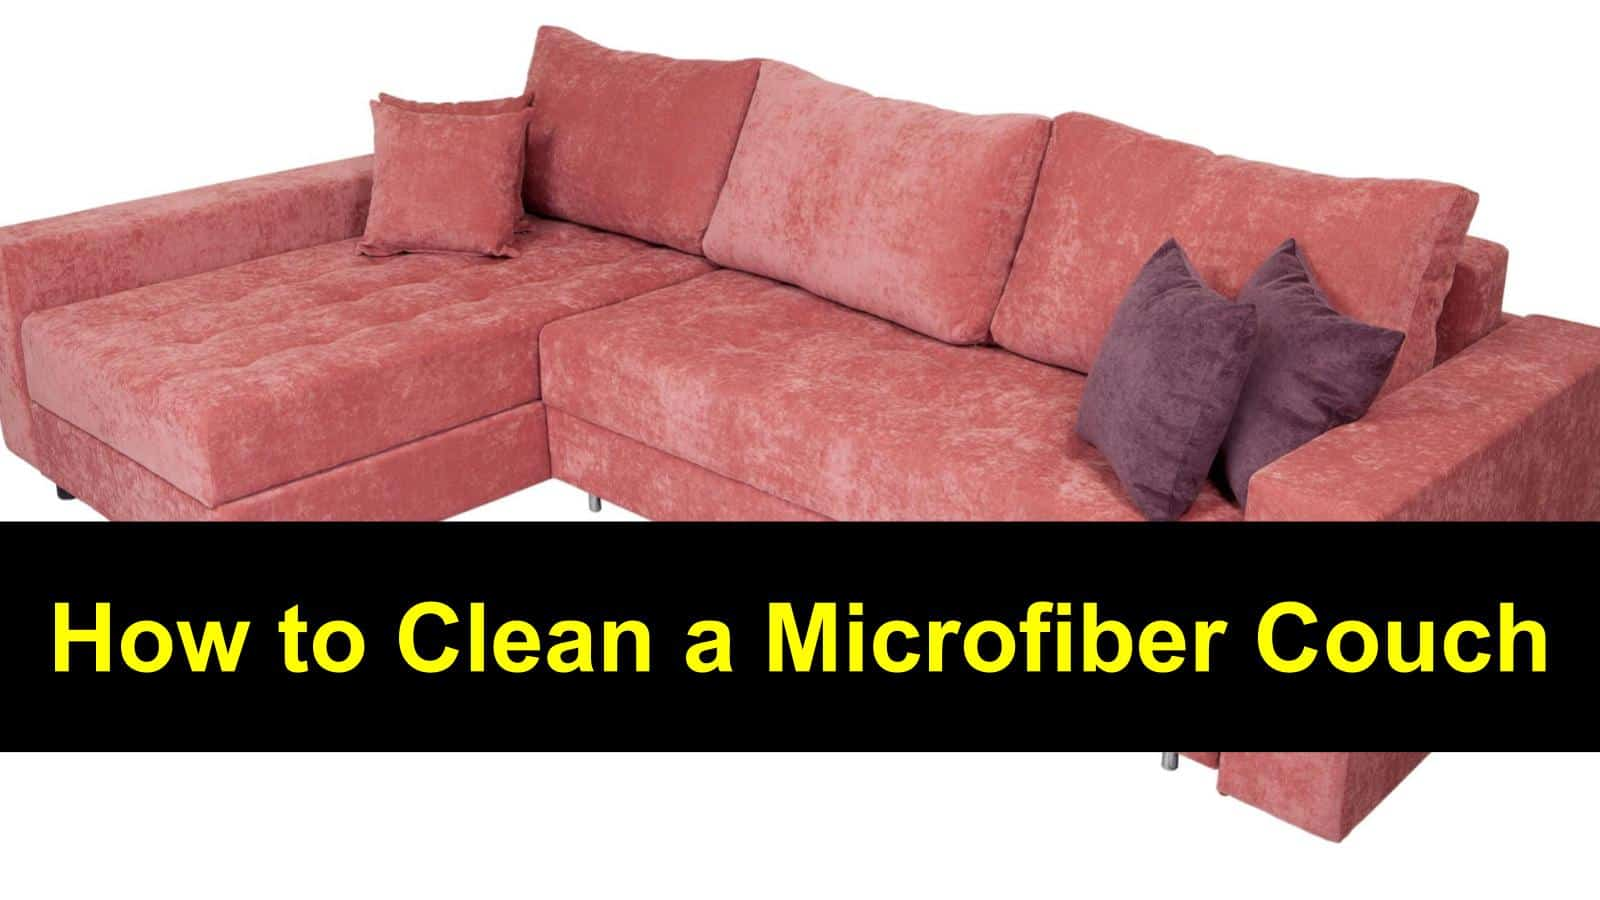 How To Clean A Microfiber Couch Image